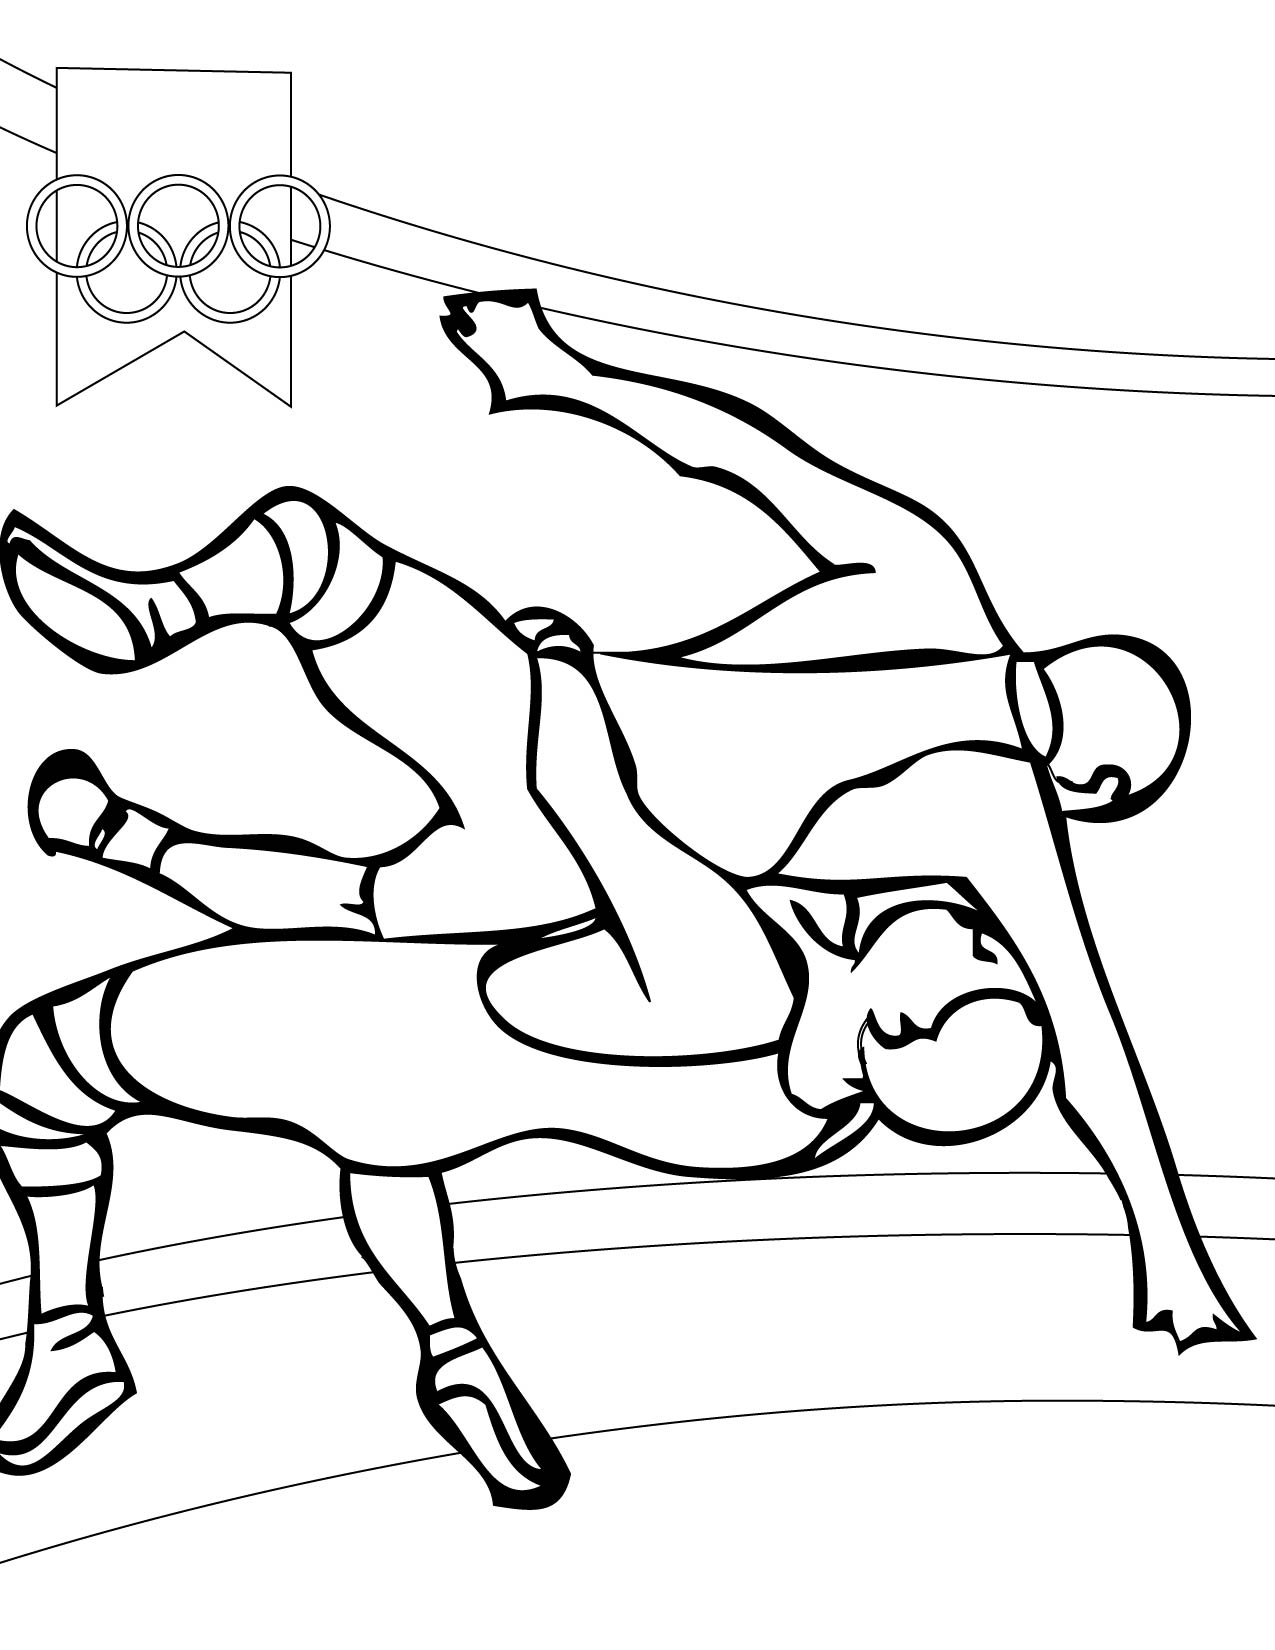 Coloring Pages Of High School Wrestlers